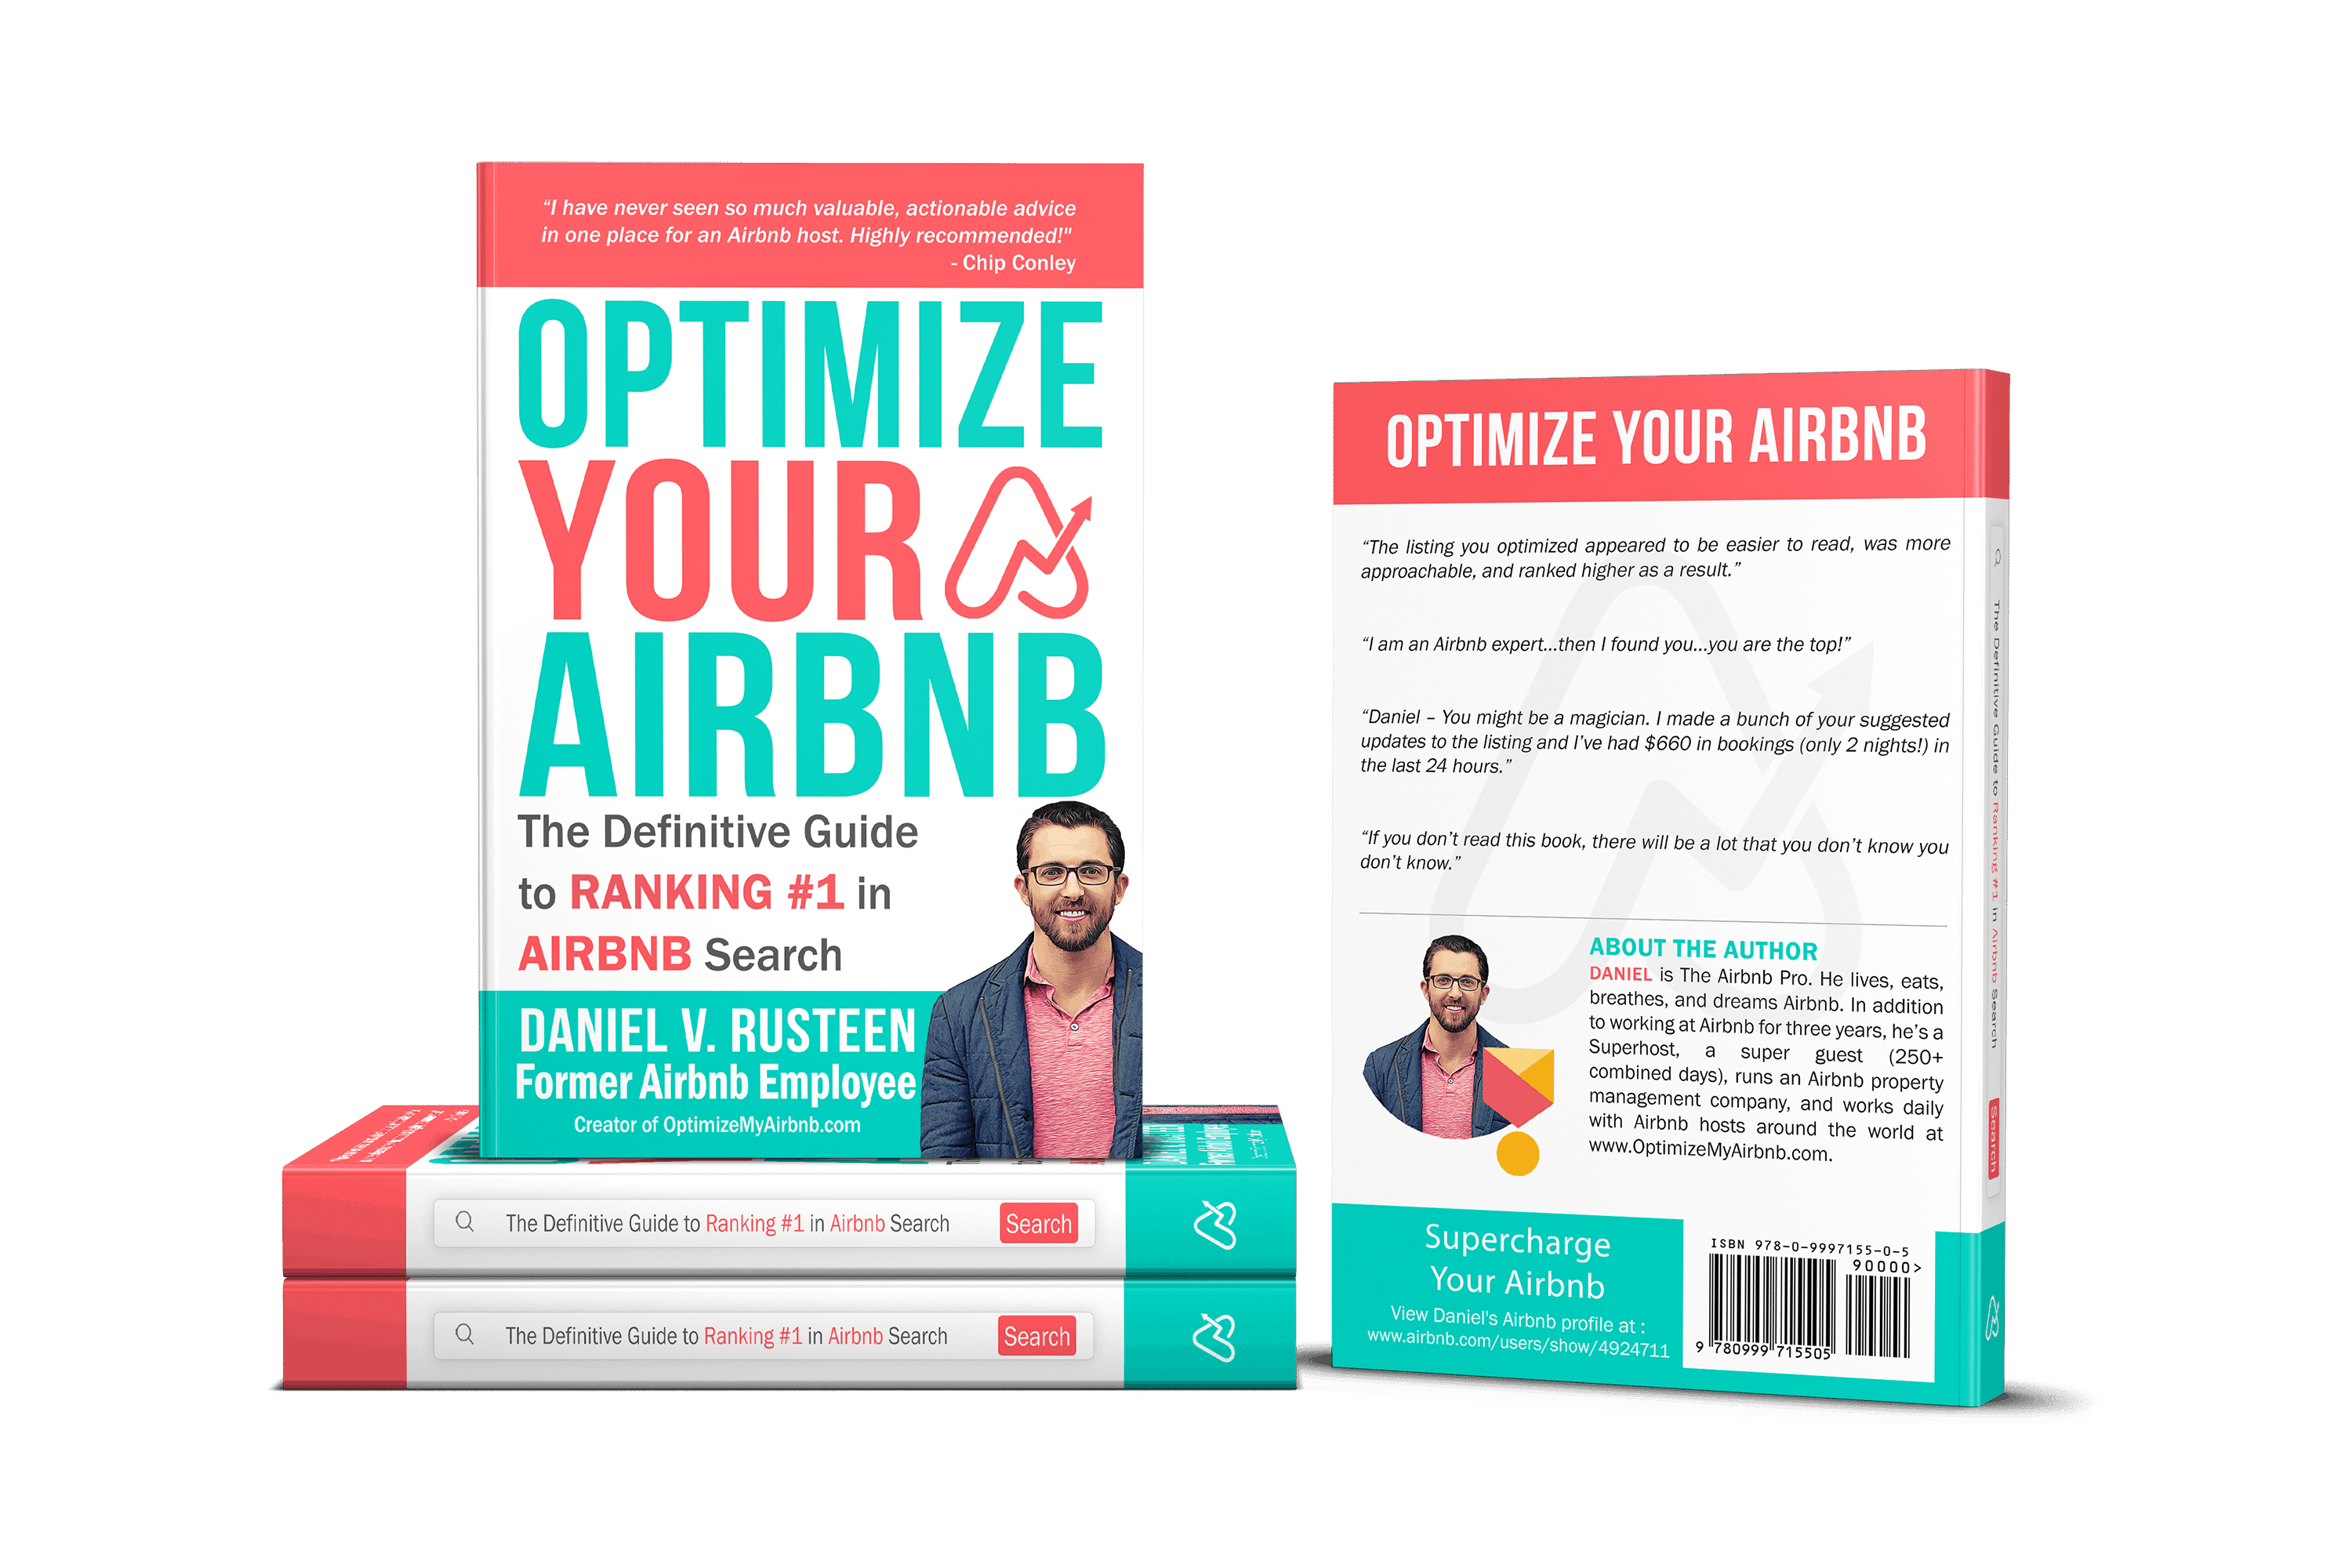 Optimize My Airbnb